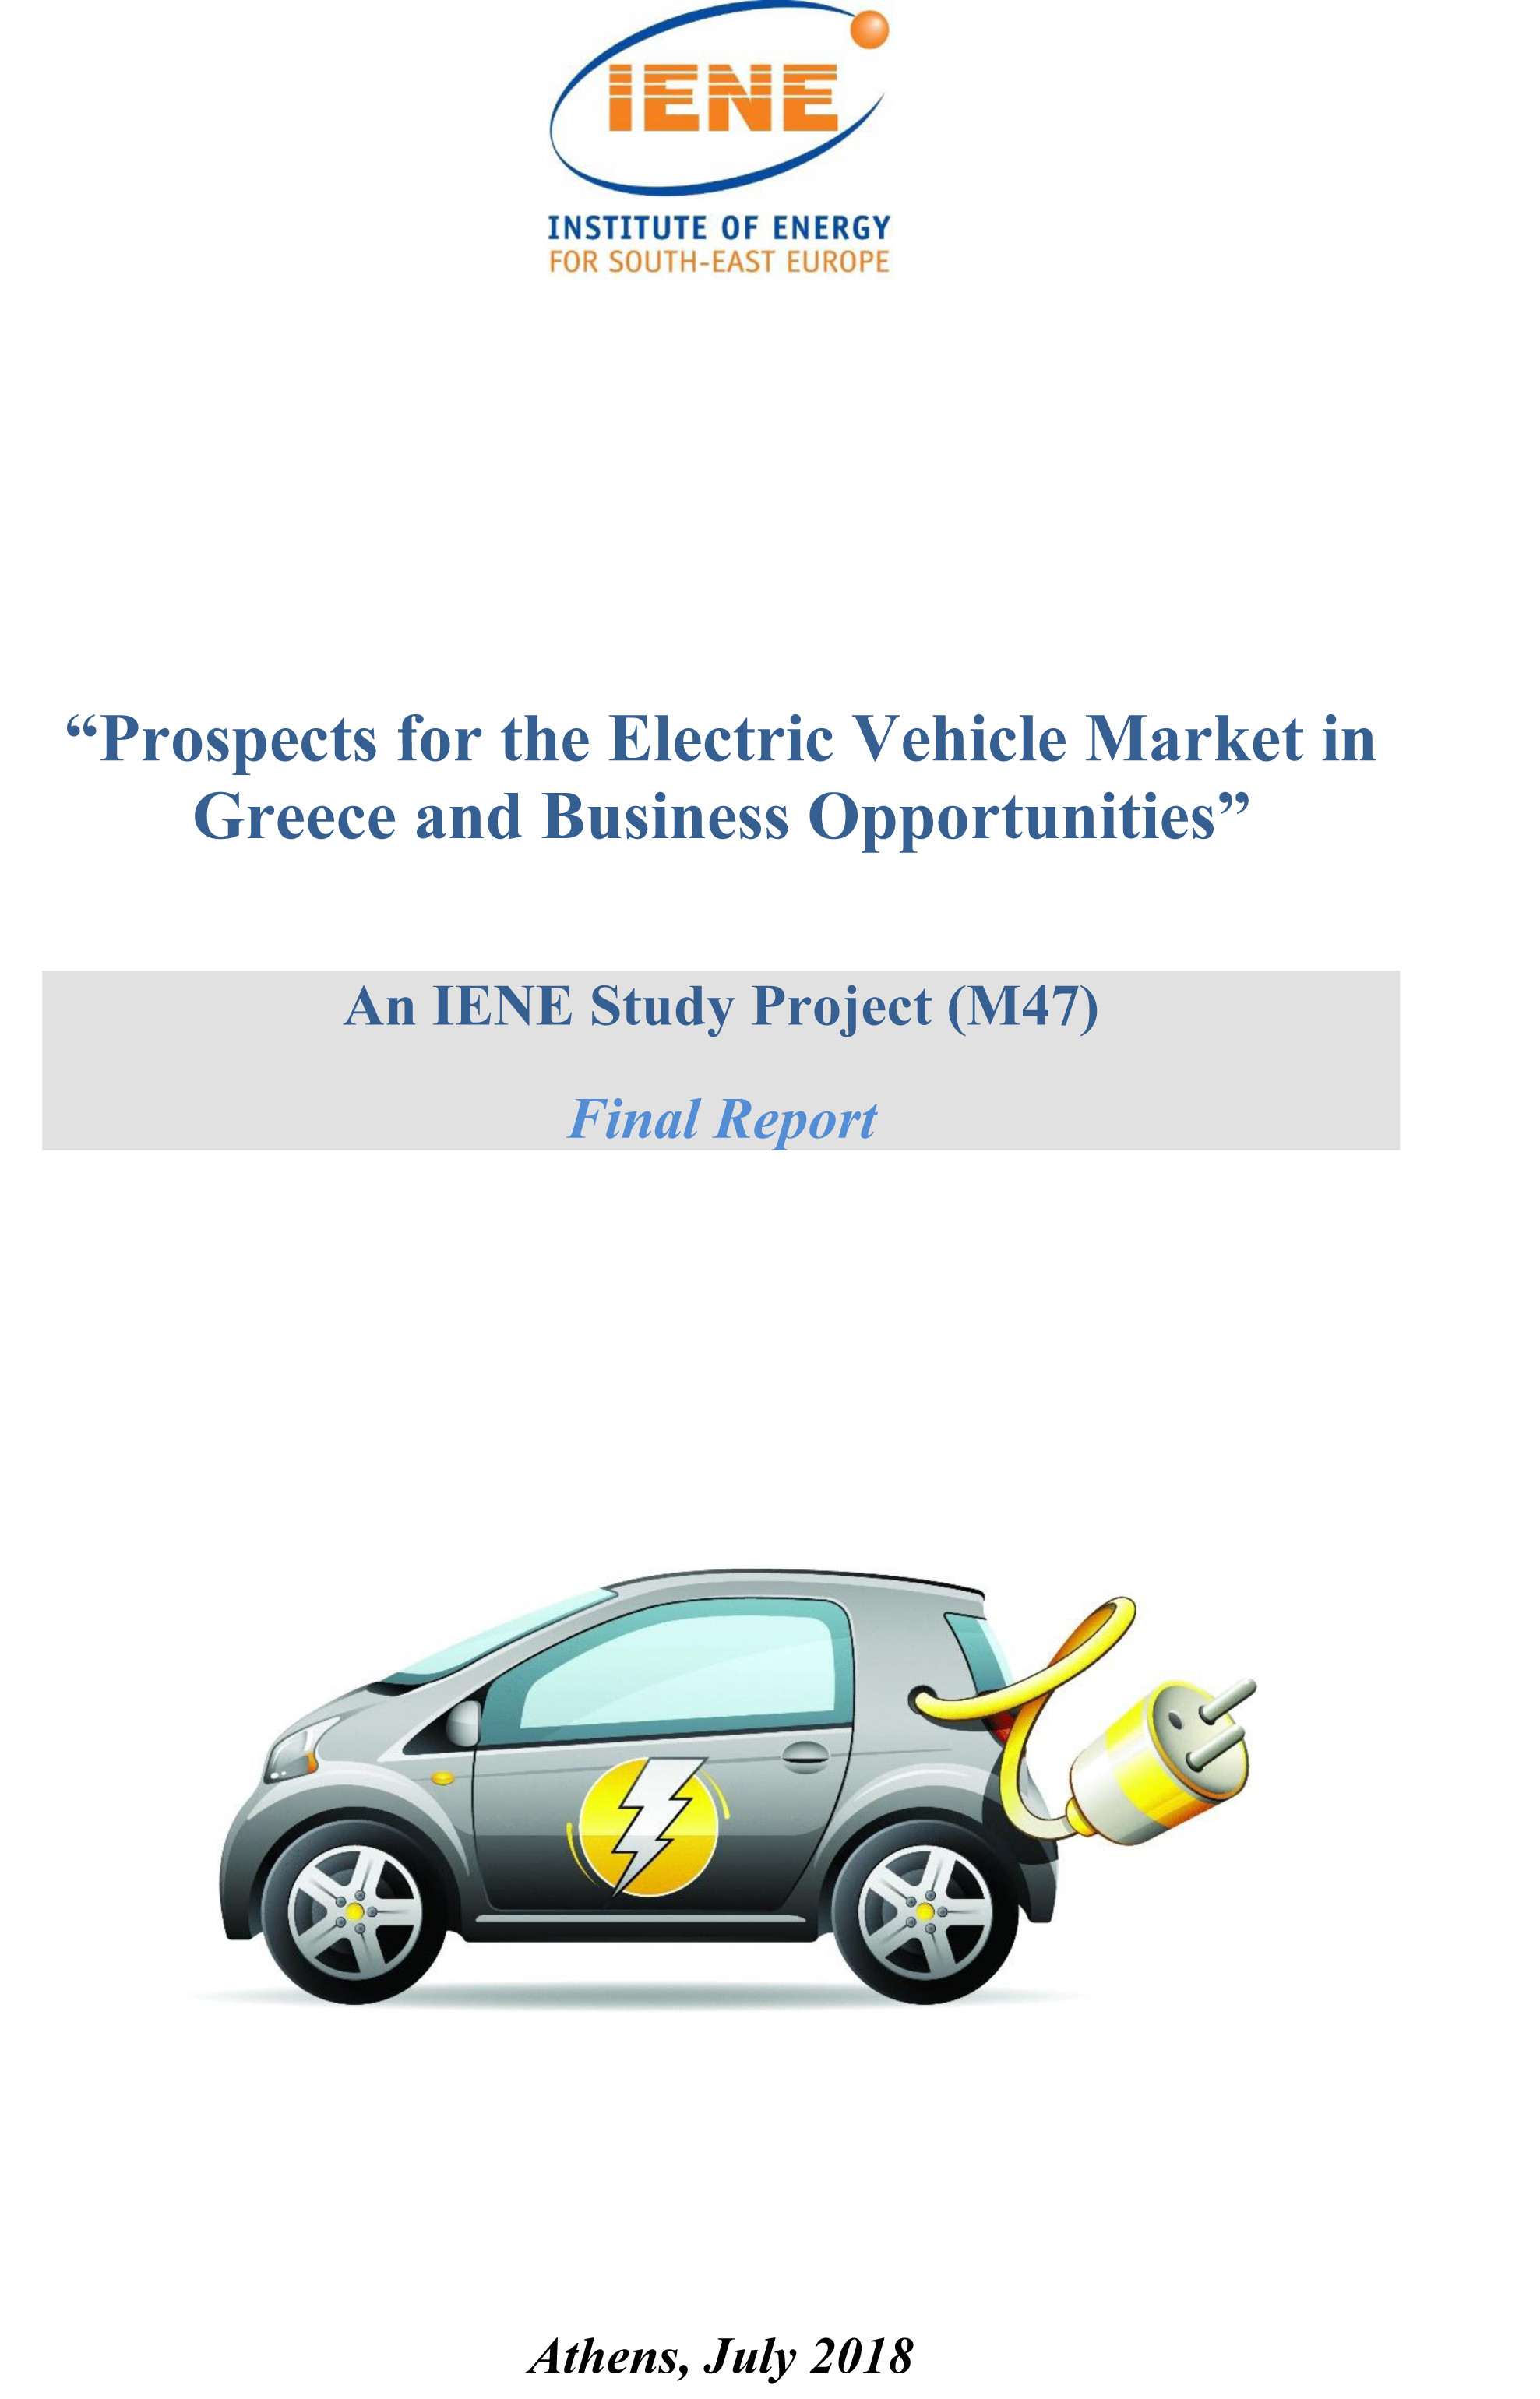 Prospects for the Electric Vehicle Market in Greece and Business Opportunities